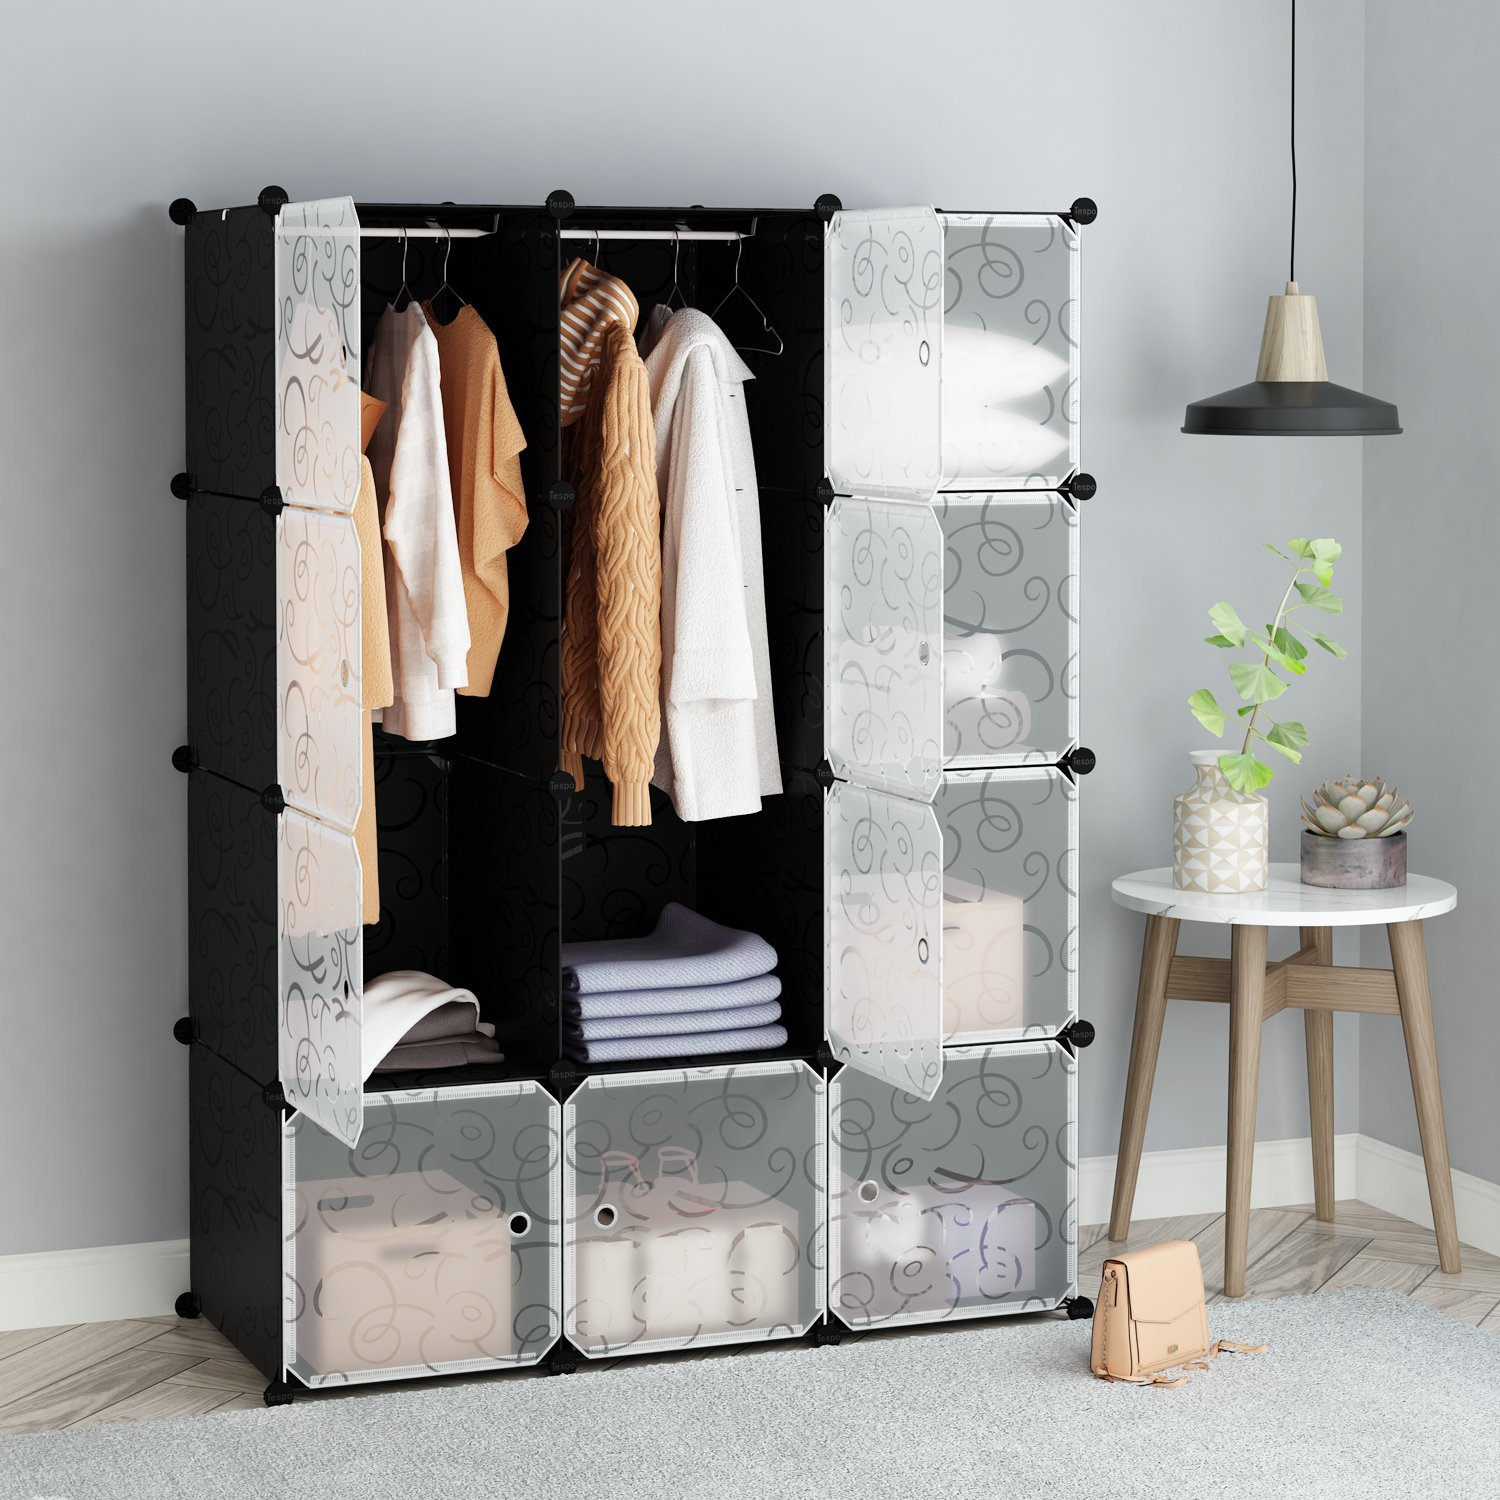 Tespo Portable Clothes Closet